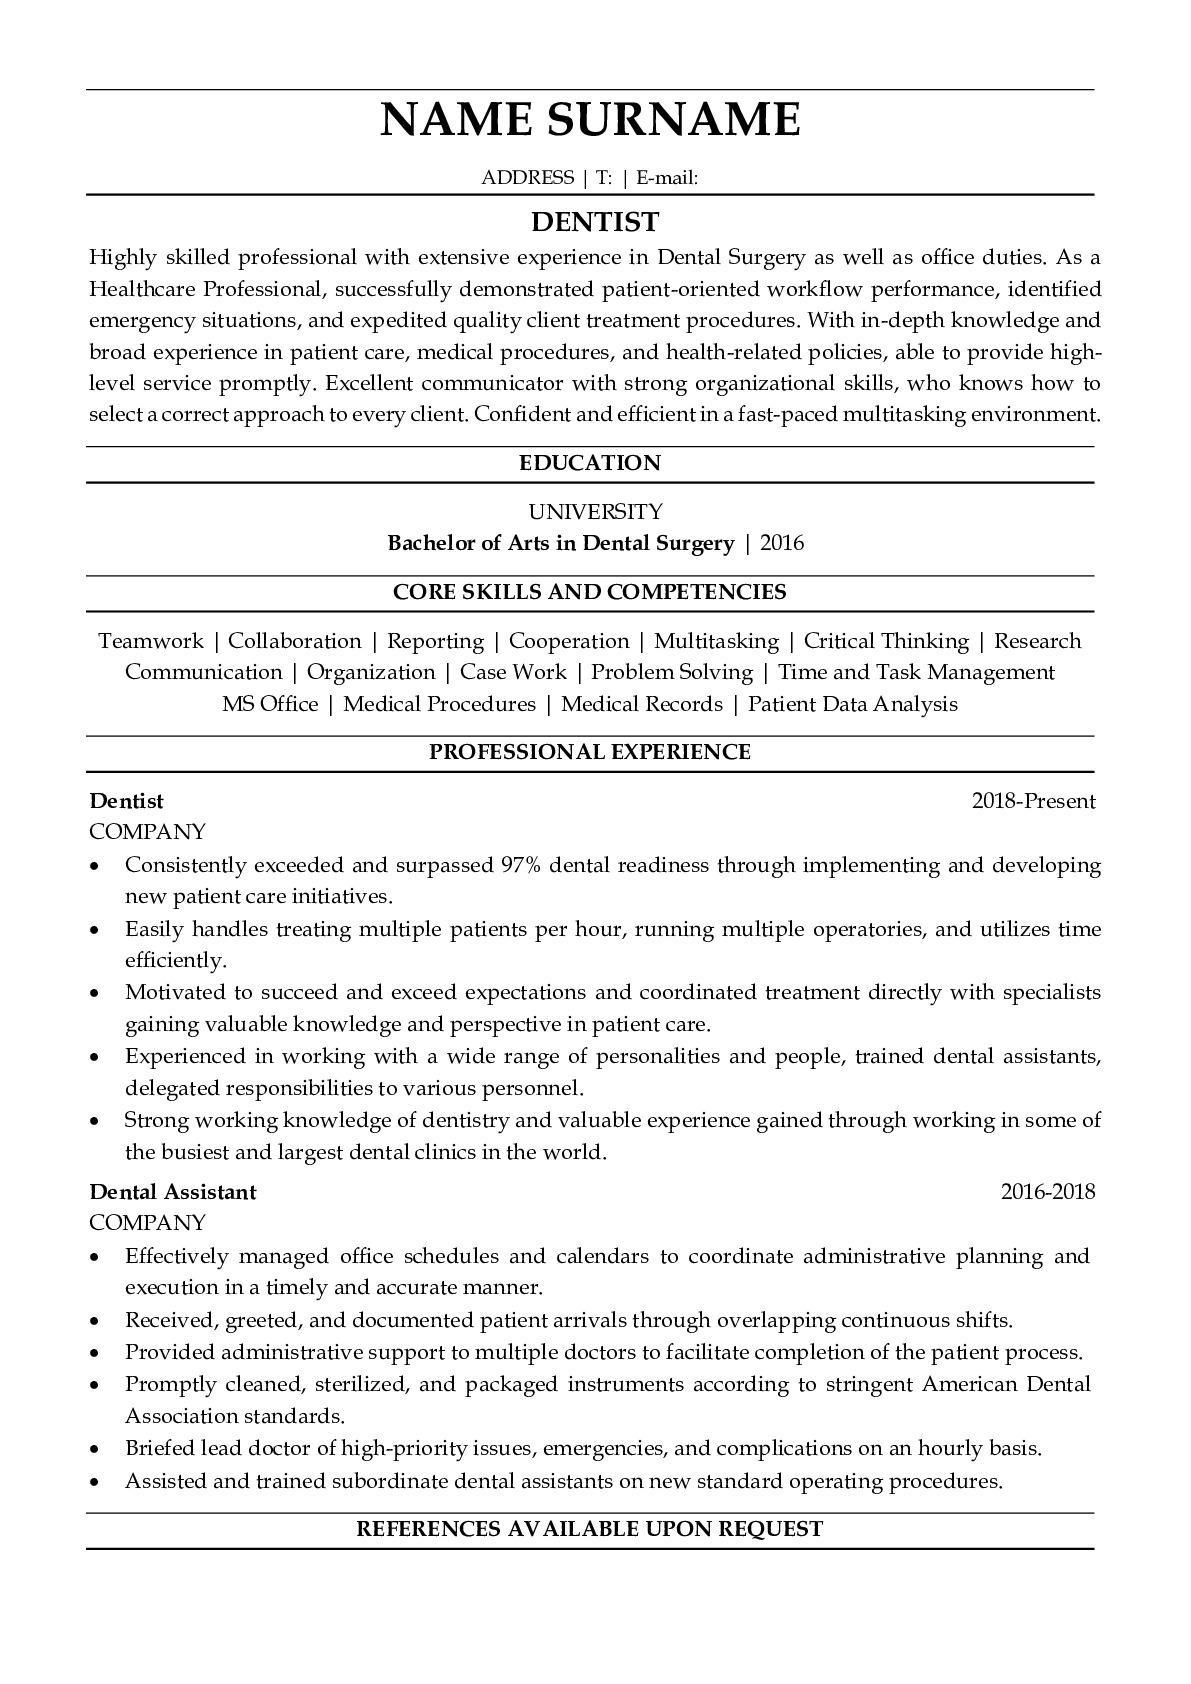 Resume Example for Dentist